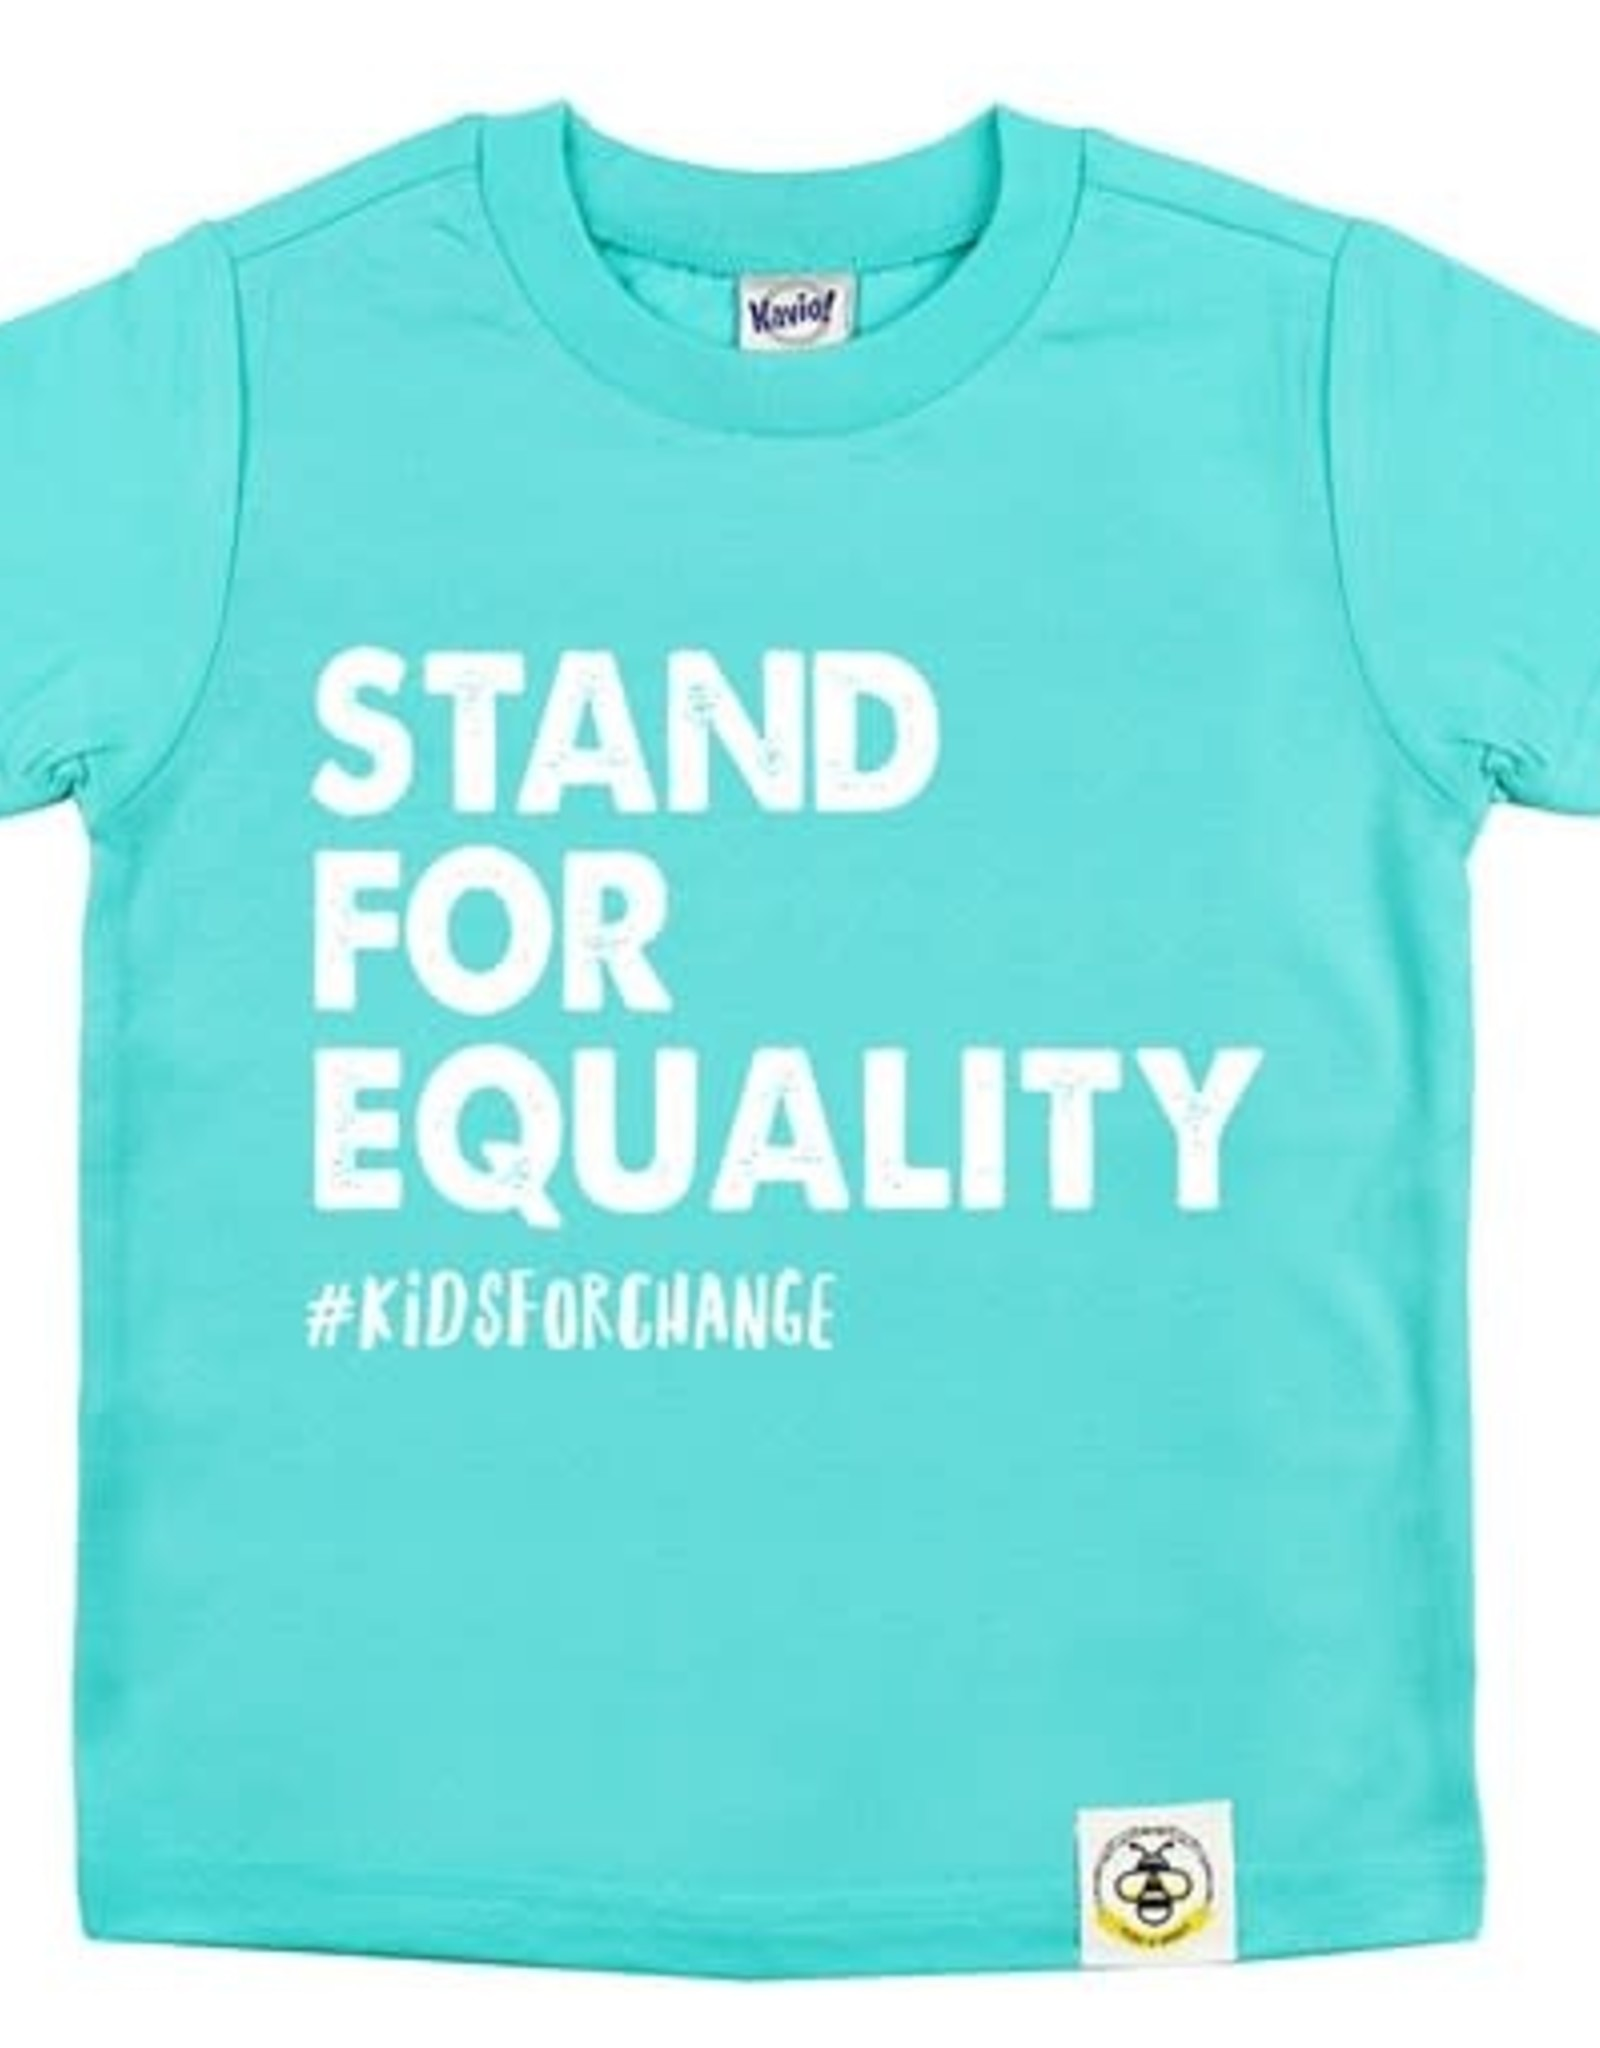 Wire & Honey Stand for Equality Tee Shirt, SS